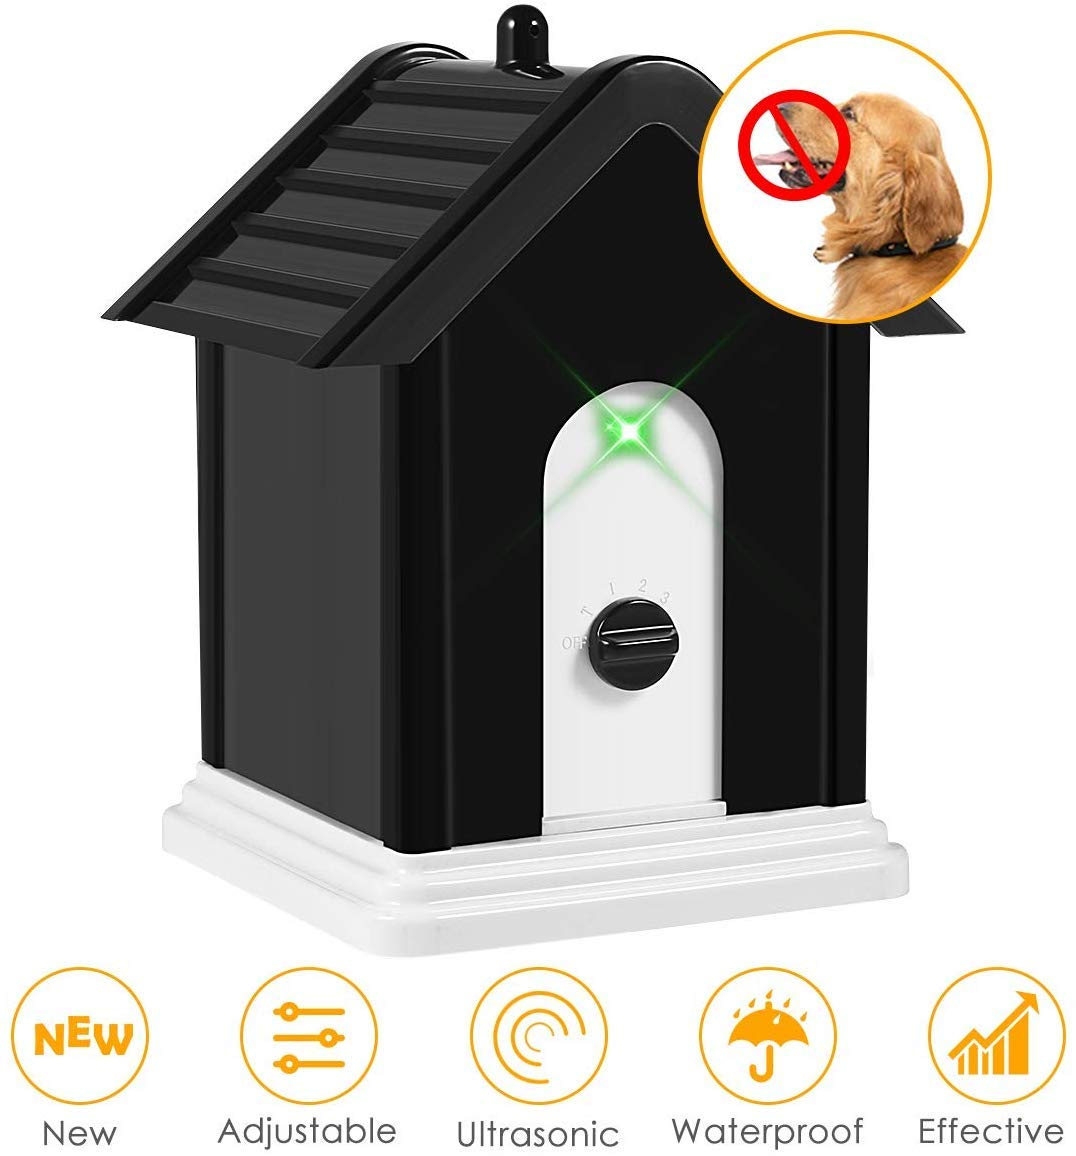 ELenest Anti Barking Device, 2019 Advanced Outdoor Dog Repellent Device Bark Box with Adjustable Ultrasonic Level Control Safe for Dogs, Bark Control Device, Sonic Bark Deterrents by ELenest